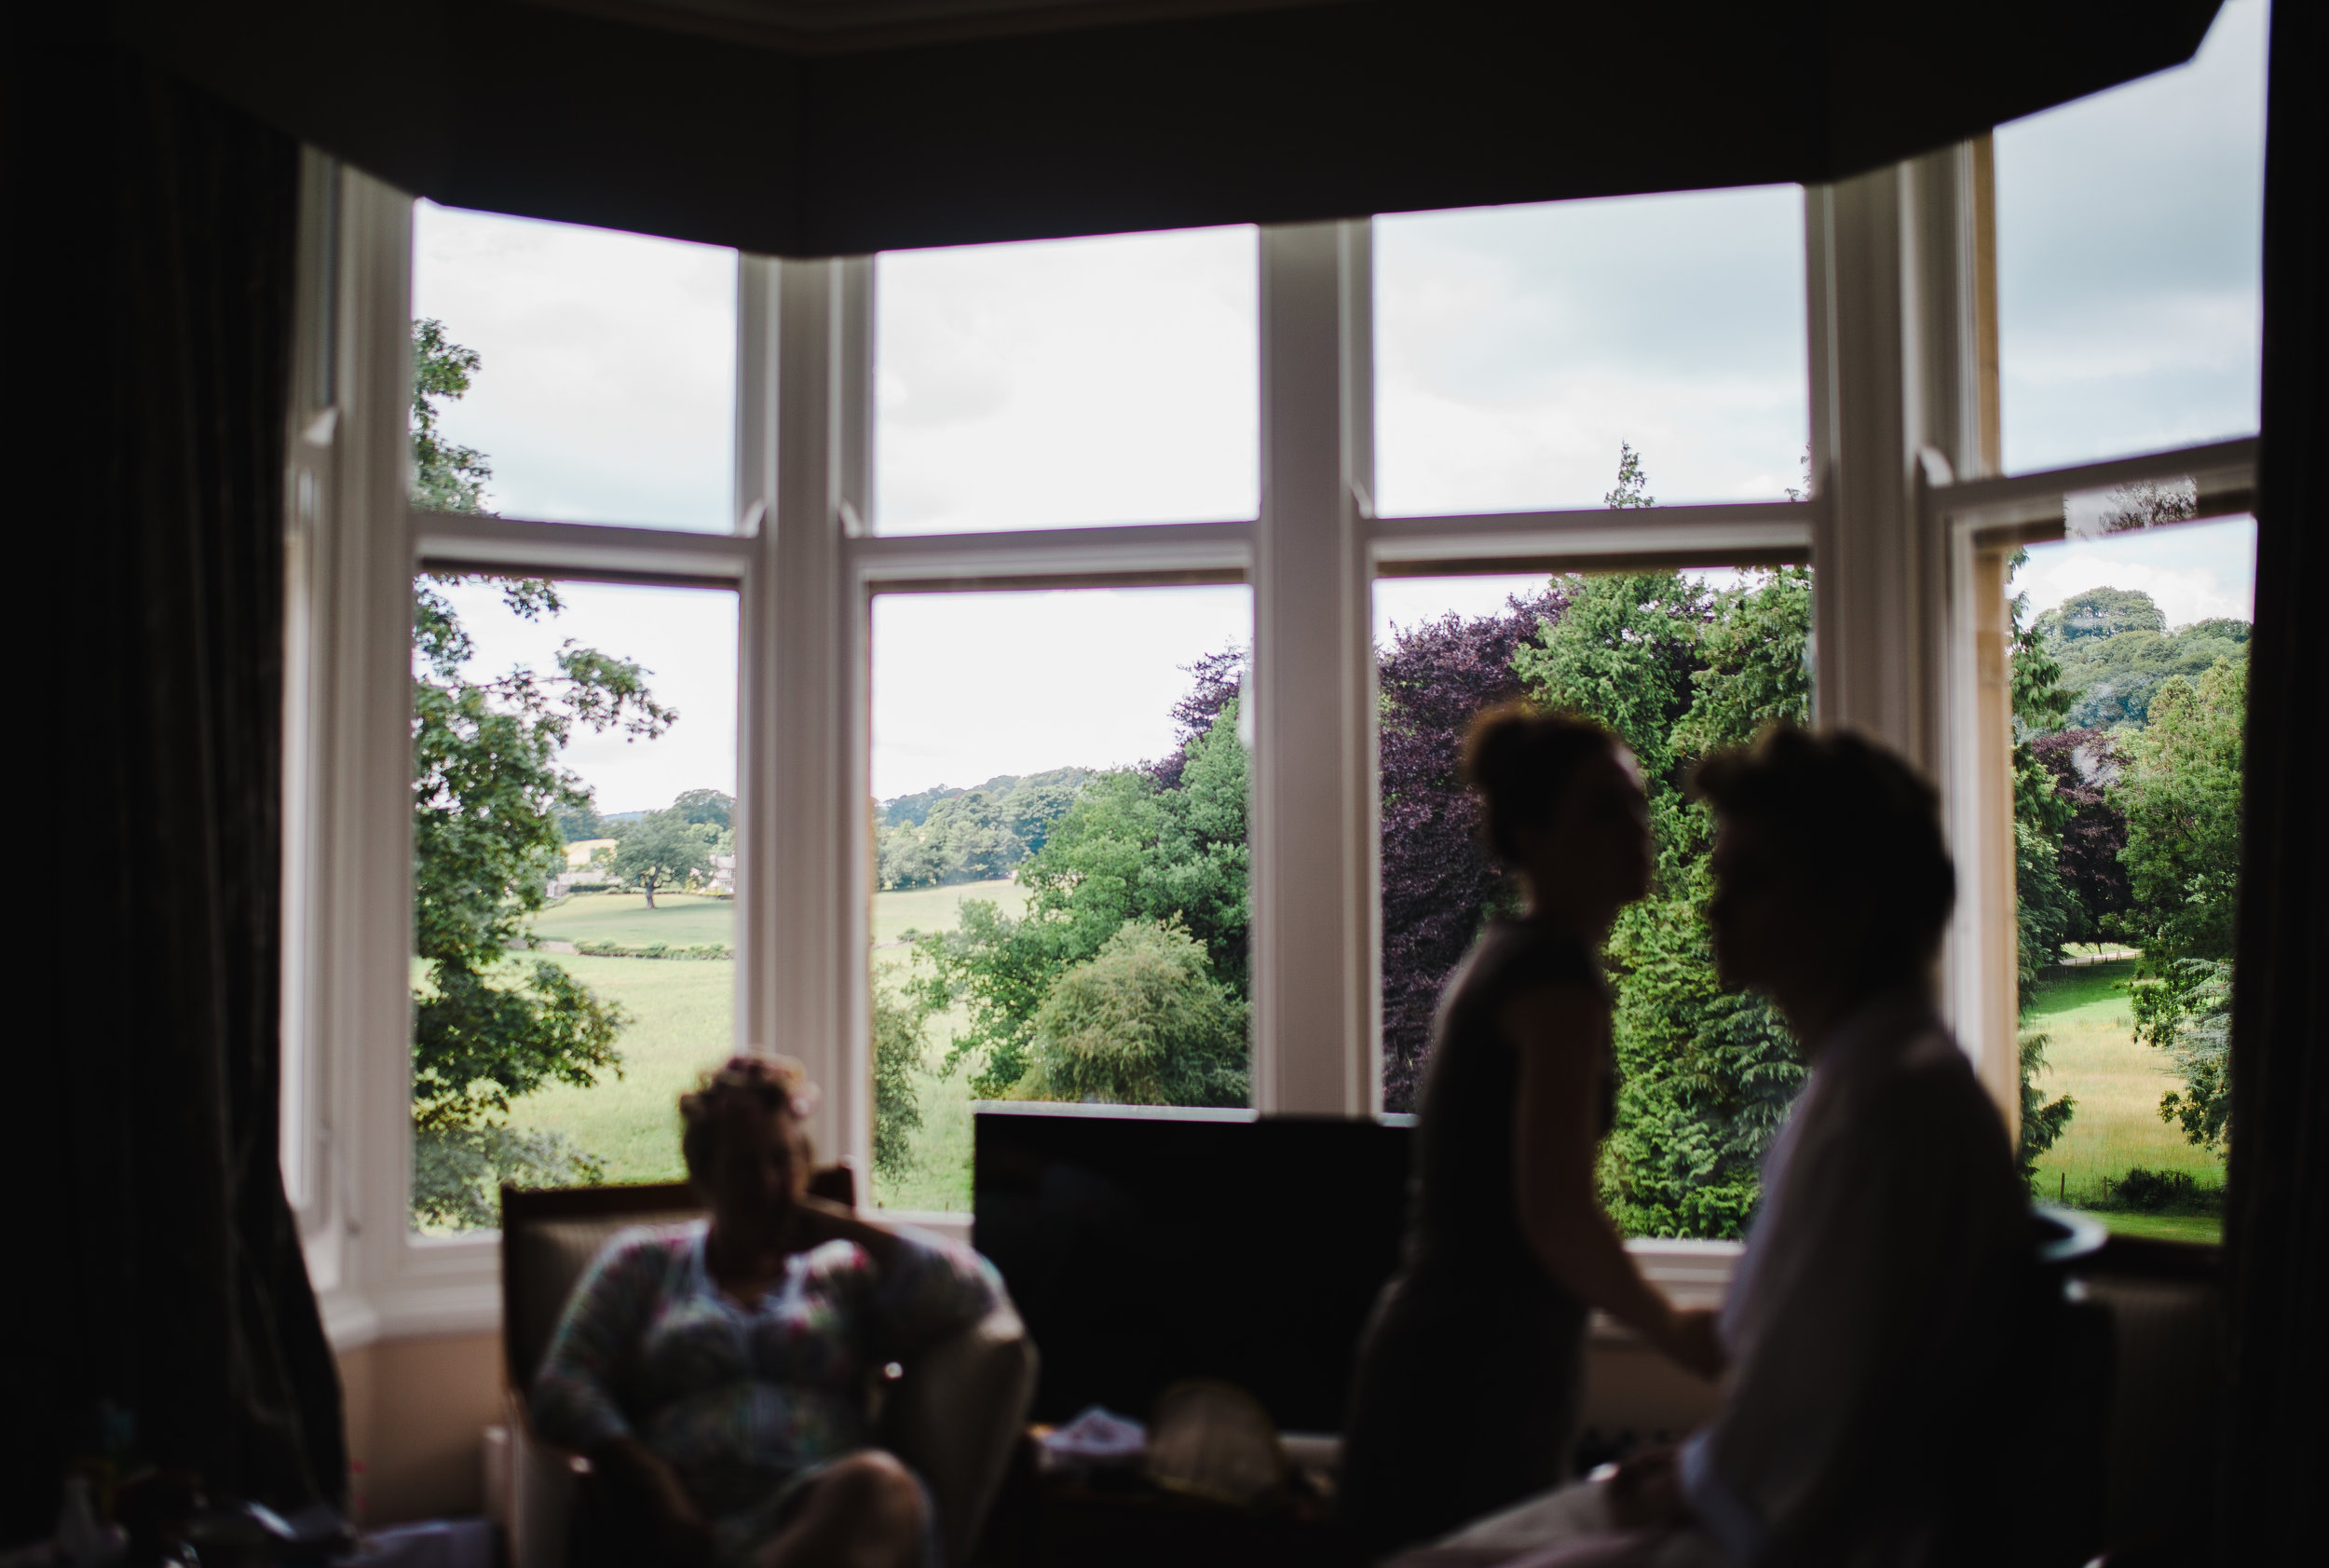 location shot - The Villa at Levens in the Lake District